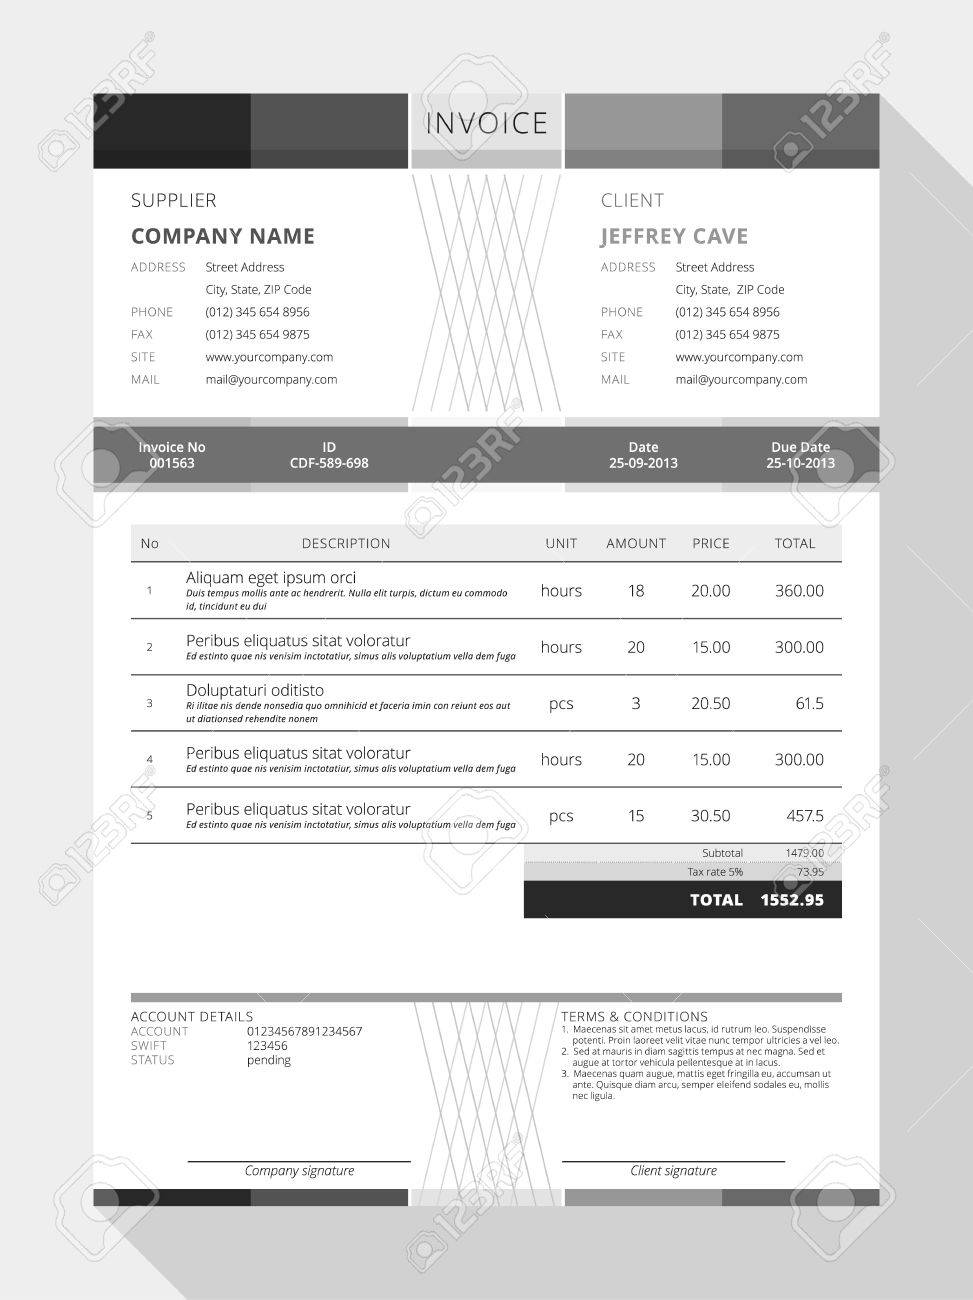 Maidofhonortoastus  Marvellous Design An Invoice  Professional Graphic Design Invoice  With Extraordinary Vector Customizable Invoice Form Template Design Vector   Design An Invoice With Breathtaking Acura Rdx Invoice Also Final Invoice Template In Addition Cloud Based Invoicing And Readsoft Invoices As Well As Invoice Estimate Additionally Service Rendered Invoice From Happytomco With Maidofhonortoastus  Extraordinary Design An Invoice  Professional Graphic Design Invoice  With Breathtaking Vector Customizable Invoice Form Template Design Vector   Design An Invoice And Marvellous Acura Rdx Invoice Also Final Invoice Template In Addition Cloud Based Invoicing From Happytomco